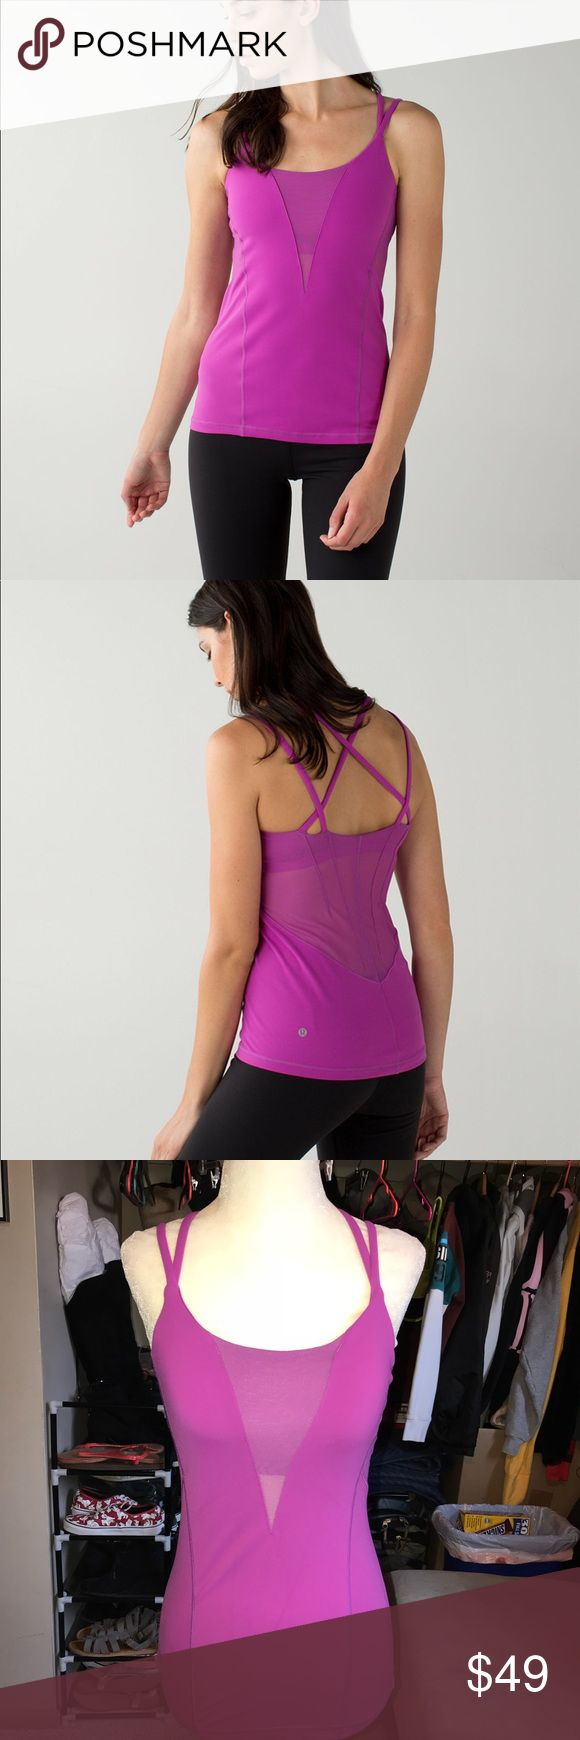 Lululemon exquisite tank in ultra violet Worn once, in great condition. This super ventilated, strappy tank was made for the sweatiest of got practices. A full mesh back and sweat wicking fabric helps us stay cool when things really heat up. Full on luon fabric is sweat wicking and four way stretch. Licra Fibres for great shape retention. Full mesh back and sides help you let off steam. Built-in bra designed with pockets for optional, removable cups. Designed for: yoga. Fit: tight…